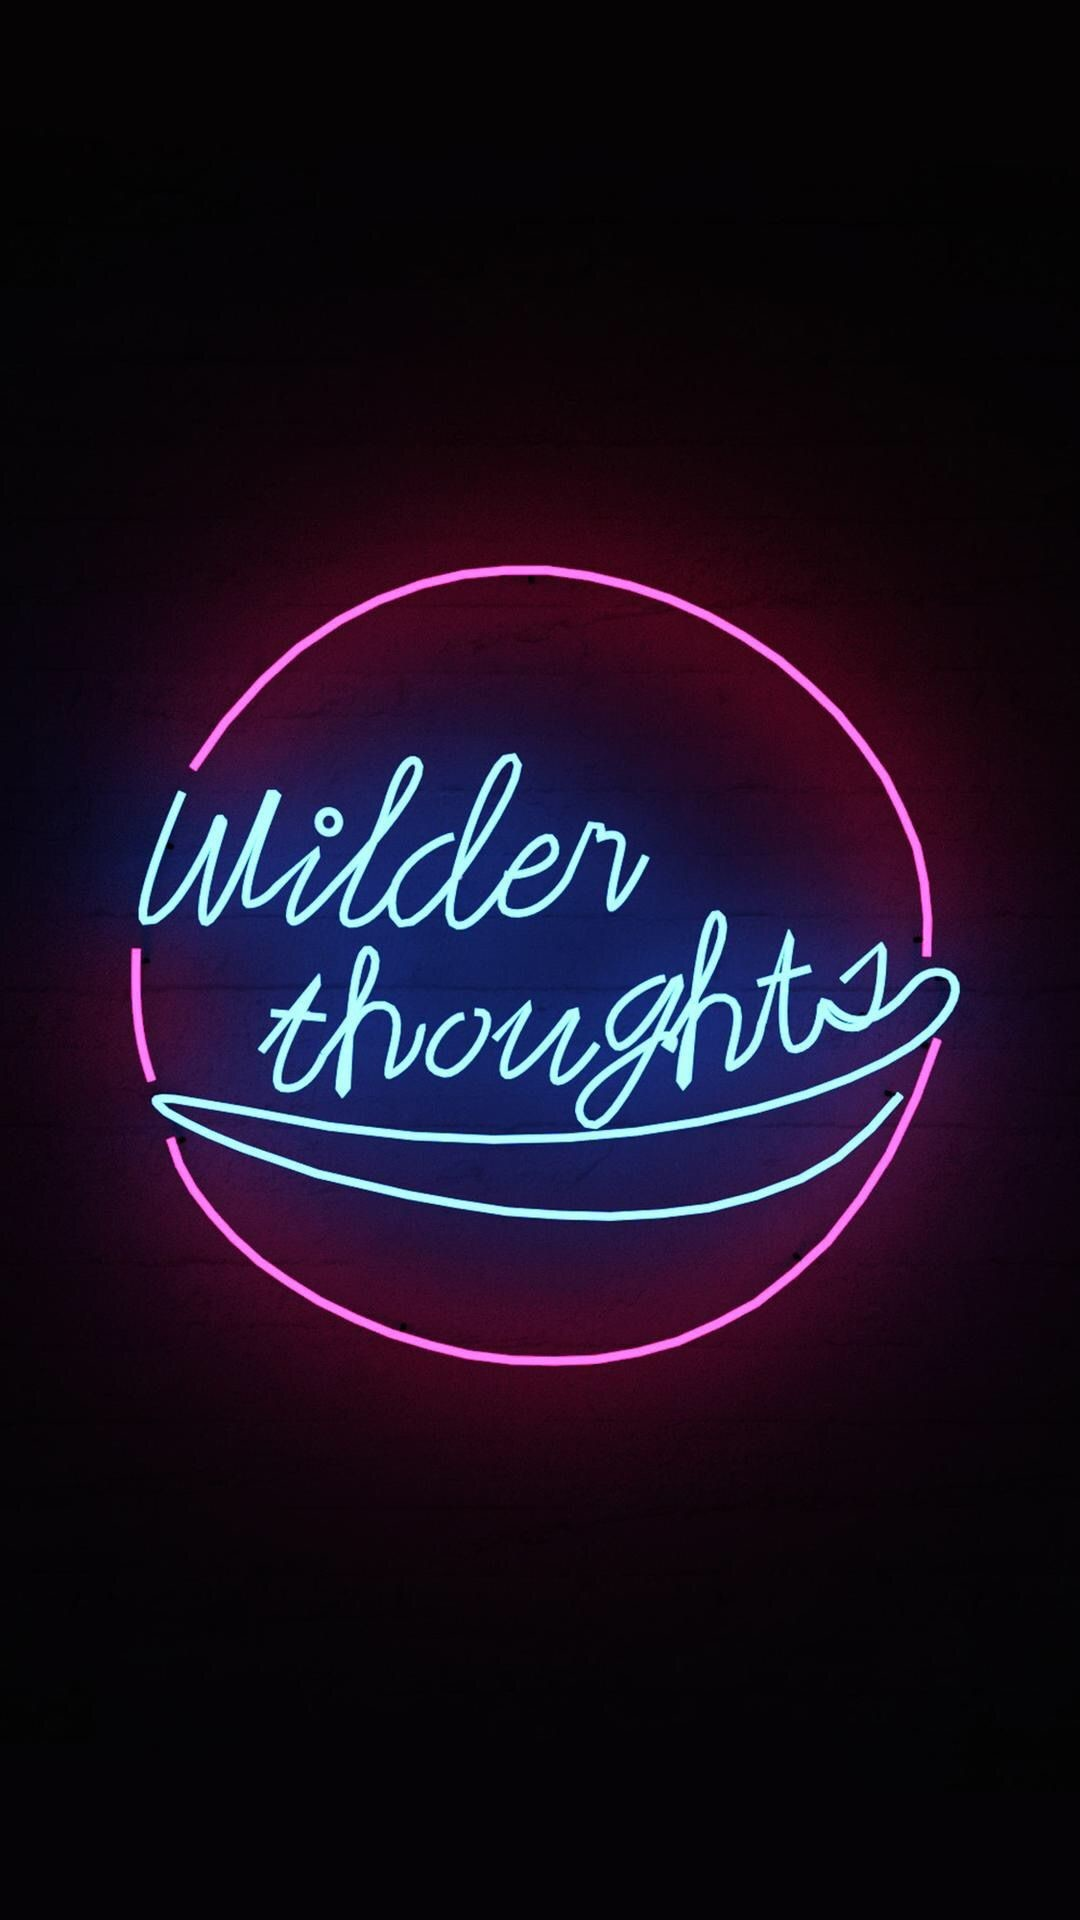 Res: 1080x1920, Neon Words, Neon Aesthetic, Vintage Neon Signs, Wallpaper Quotes, Iphone  Wallpapers, Neon Lighting, Quotation, Unspoken Words, Light Quotes